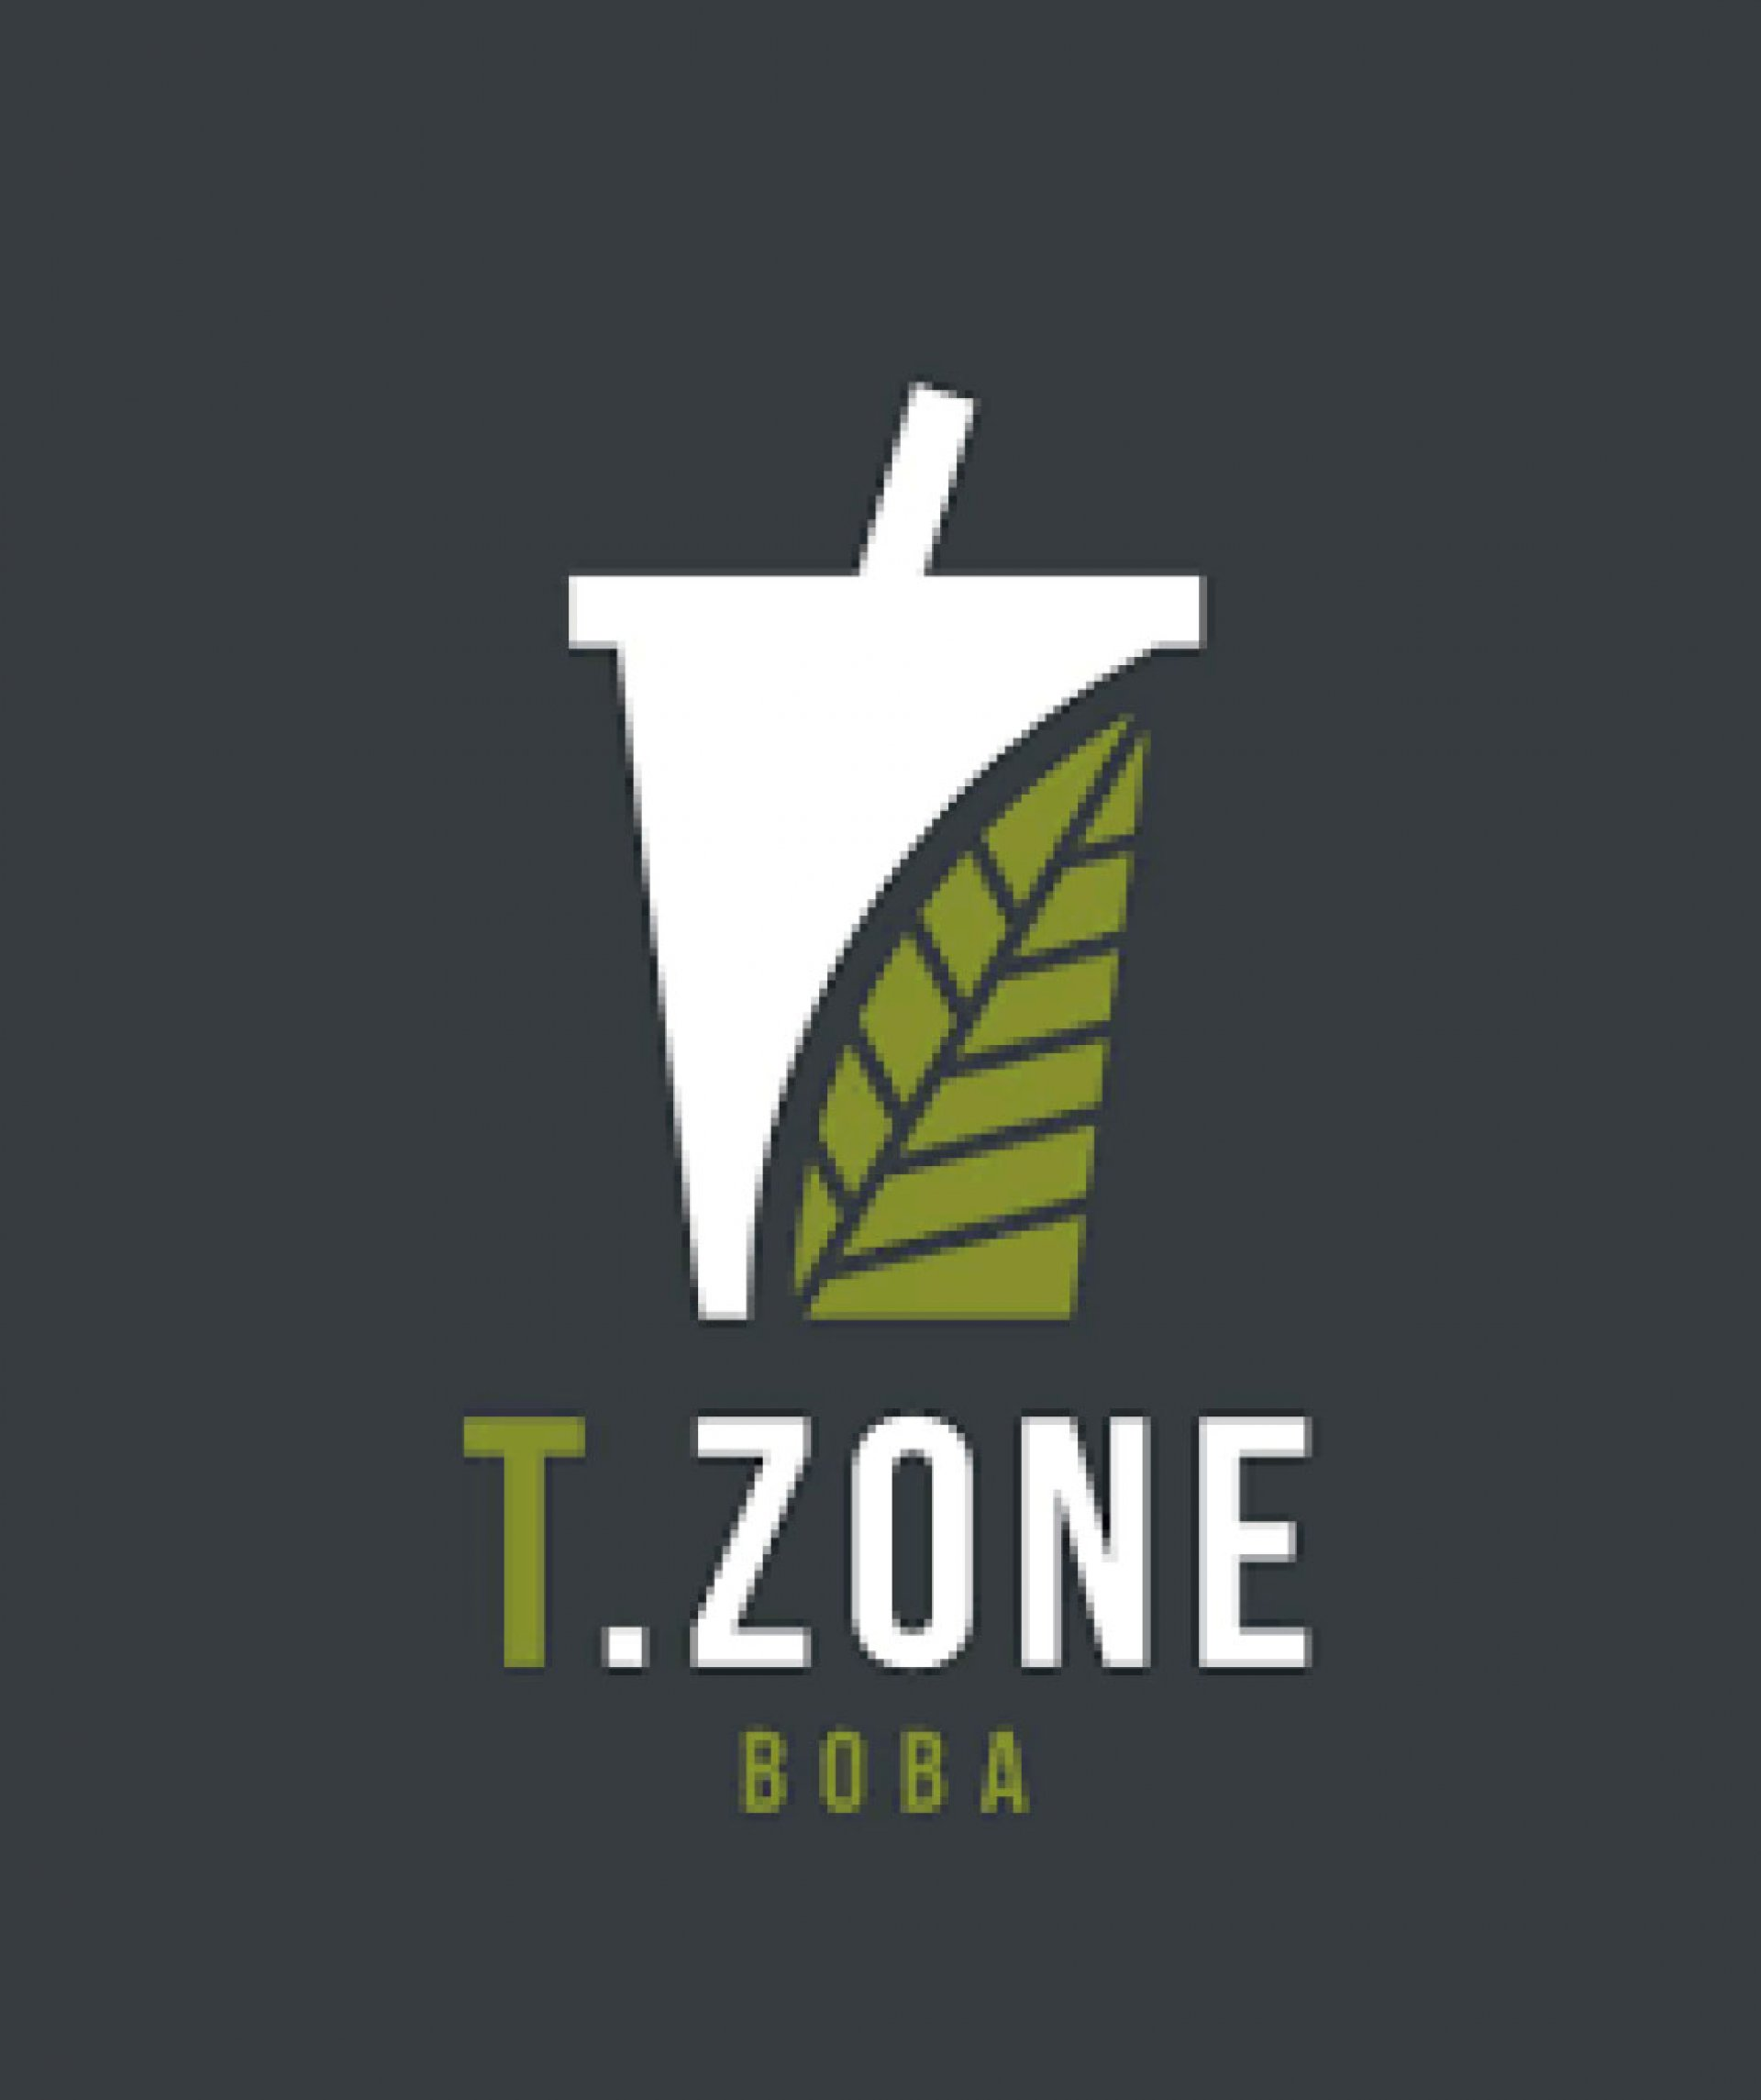 T.ZONE BOBA from Luxembourg